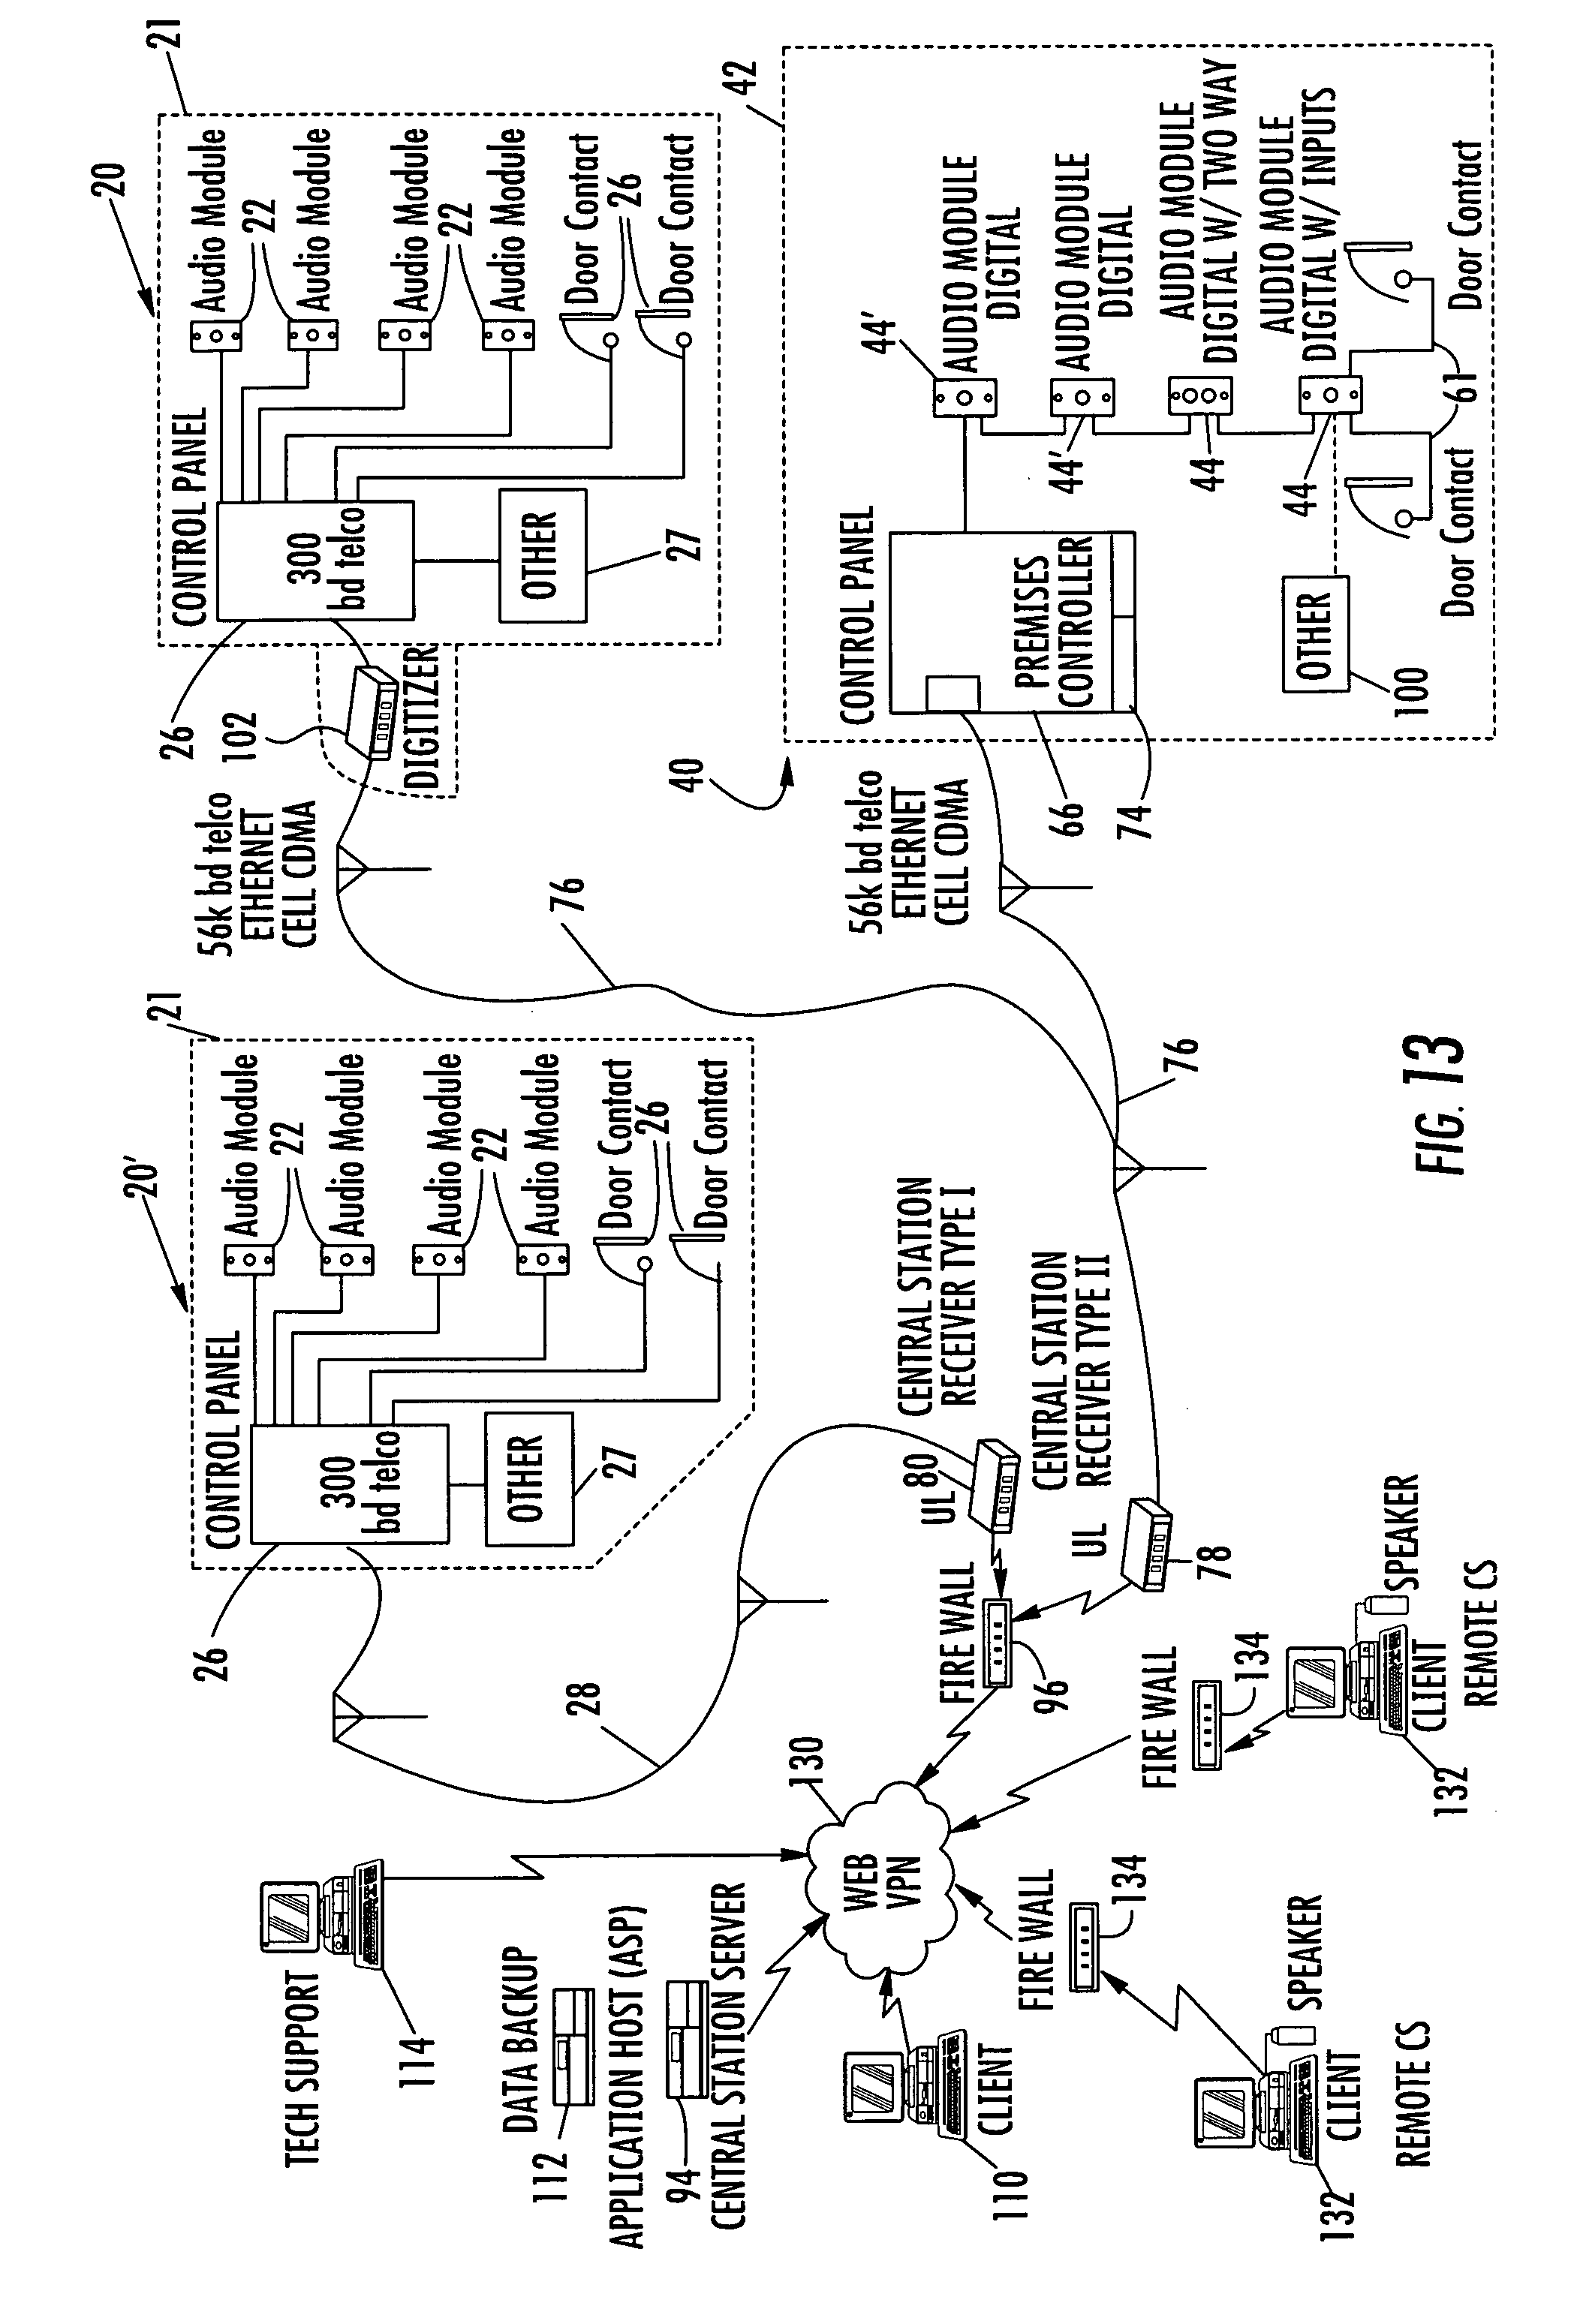 US08531286 20130910 D00015 patent us8531286 system and method for monitoring security at a sonitrol alarm wiring diagram at nearapp.co